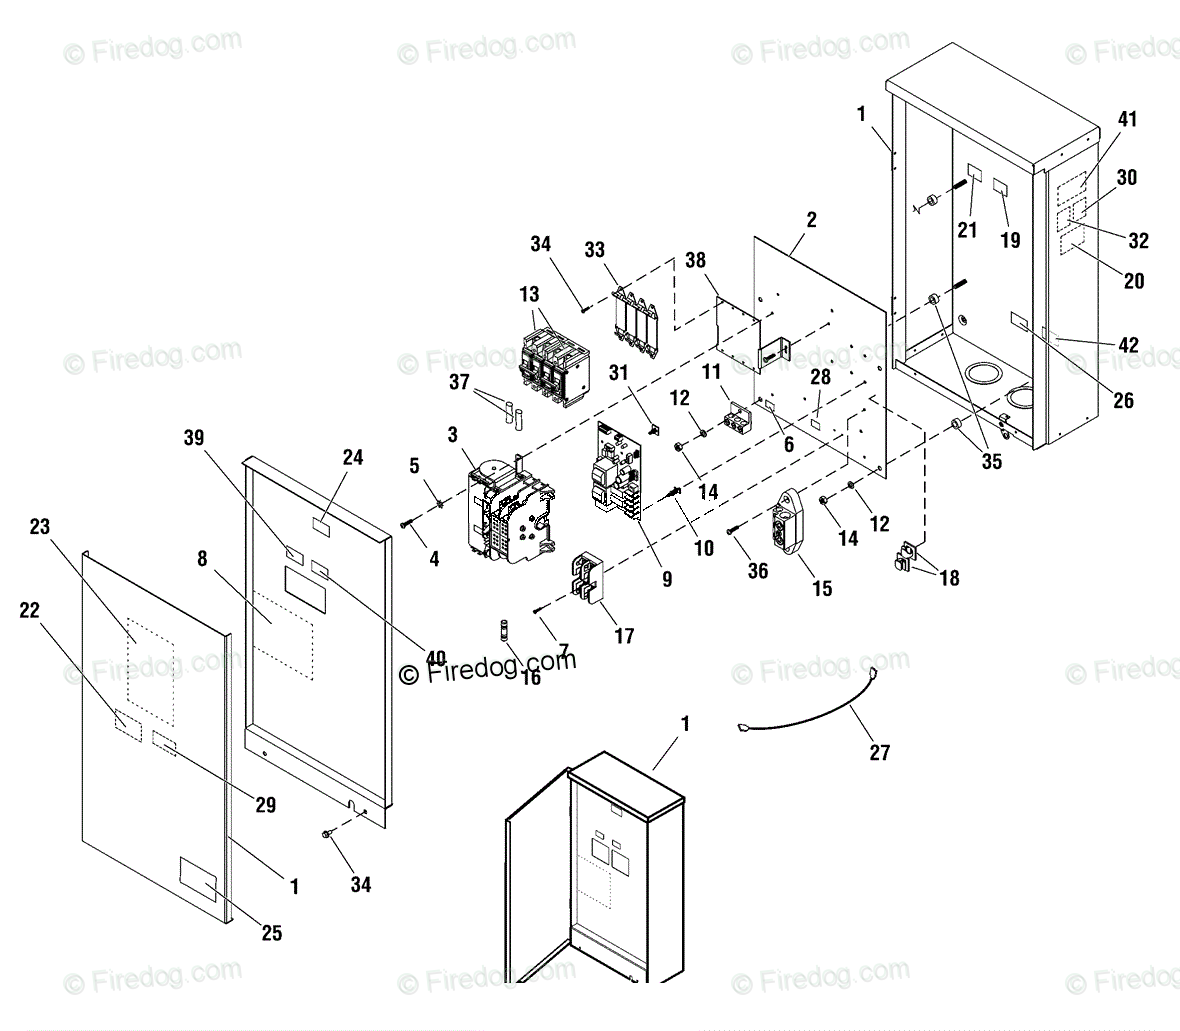 Briggs Amp Stratton Power Products United States Emergency Backup Power Systems Oem Parts Diagram